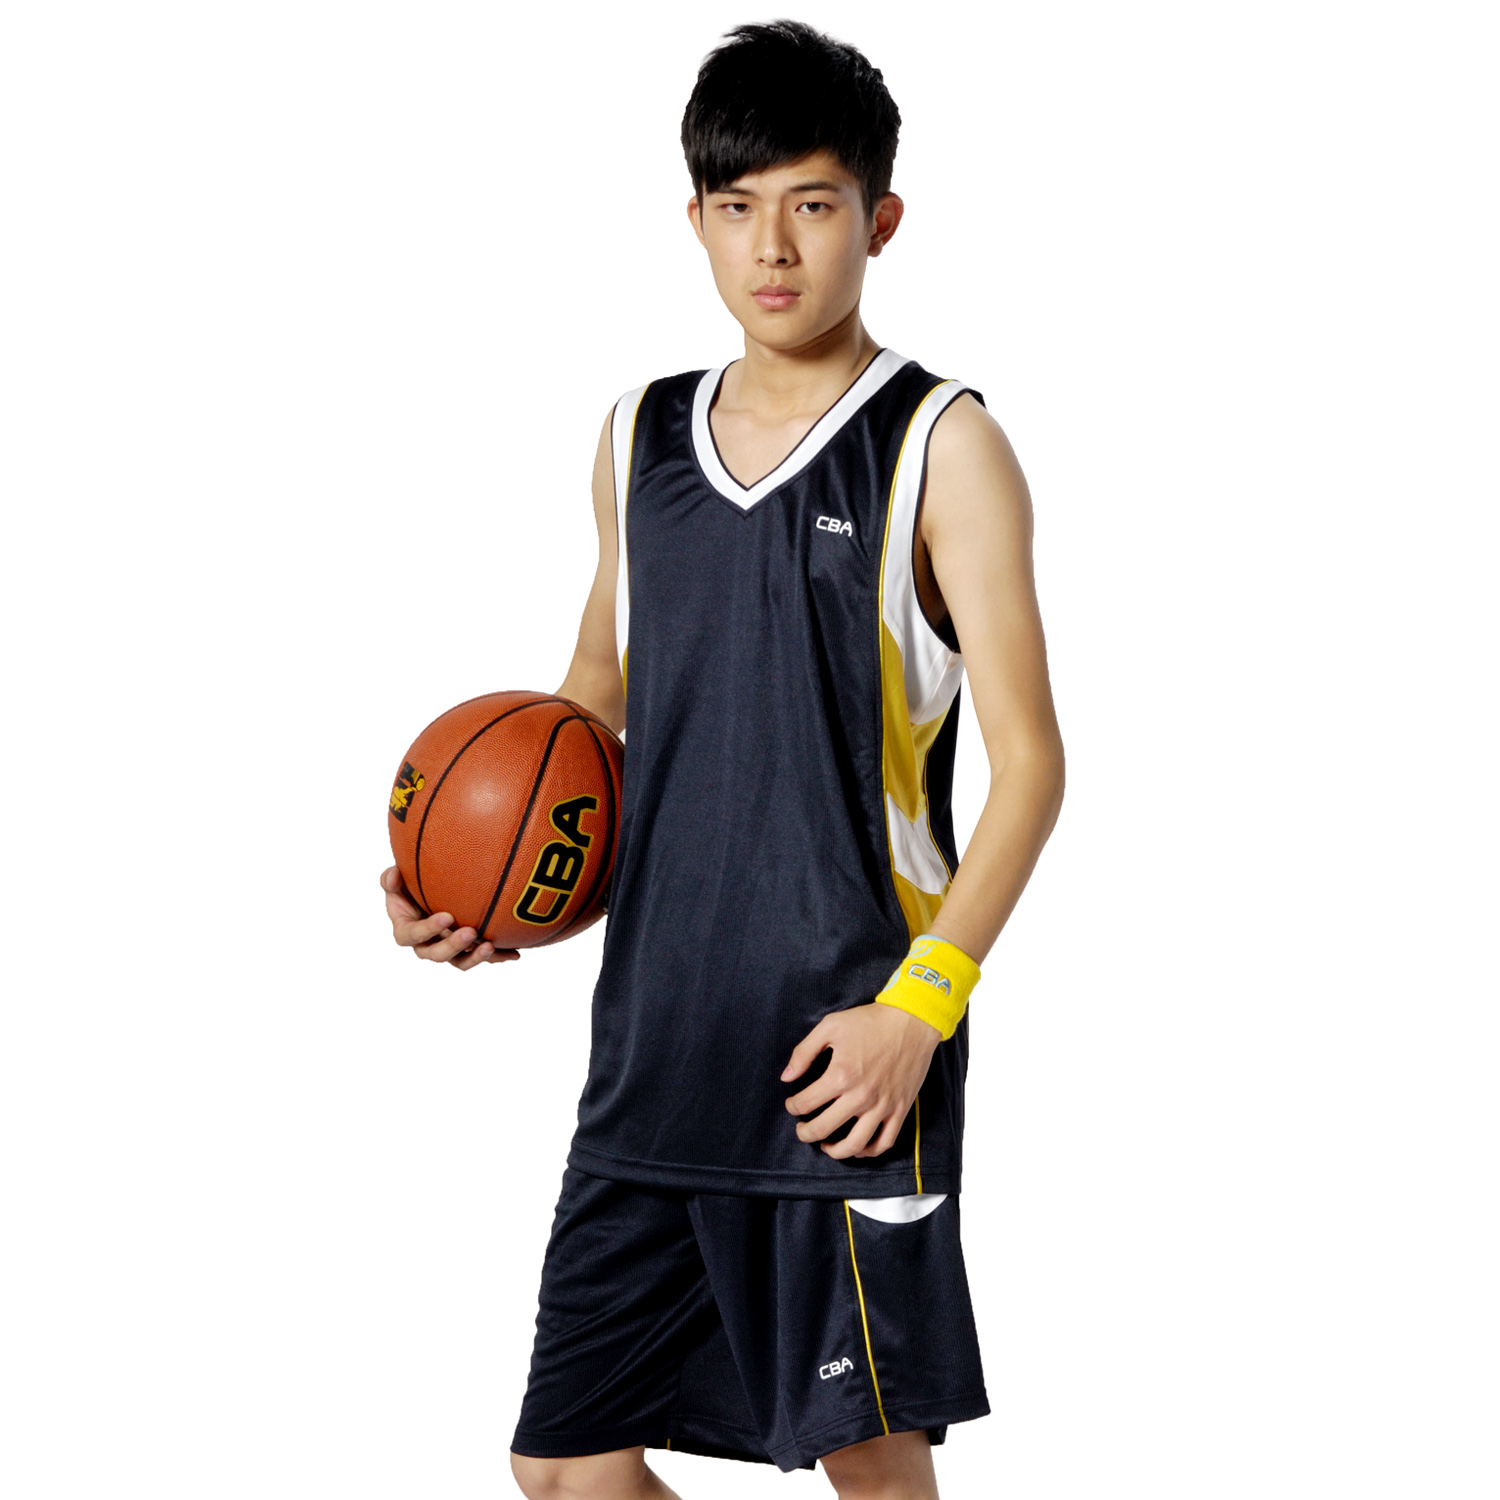 CBA2013 new year special offer authentic basketball clothes, basketball men's basketball suit suits men's training equipment